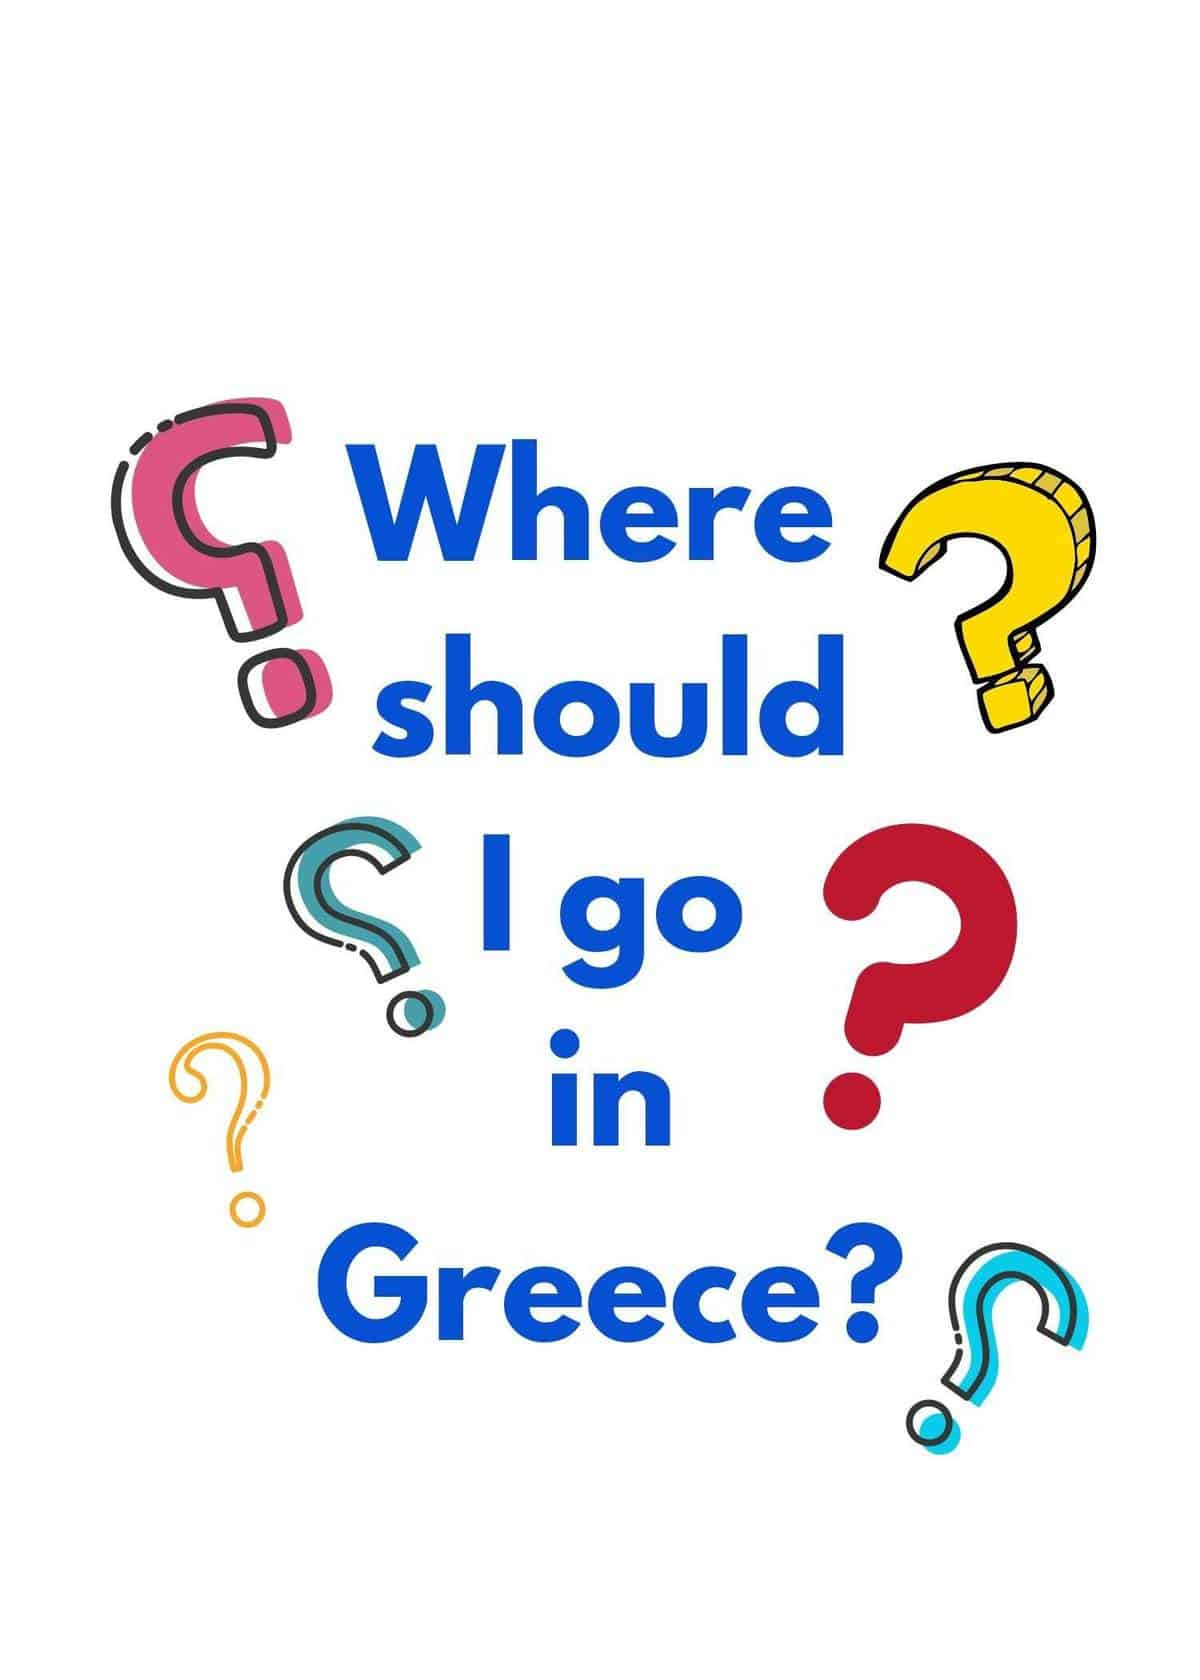 Quiz for Greece